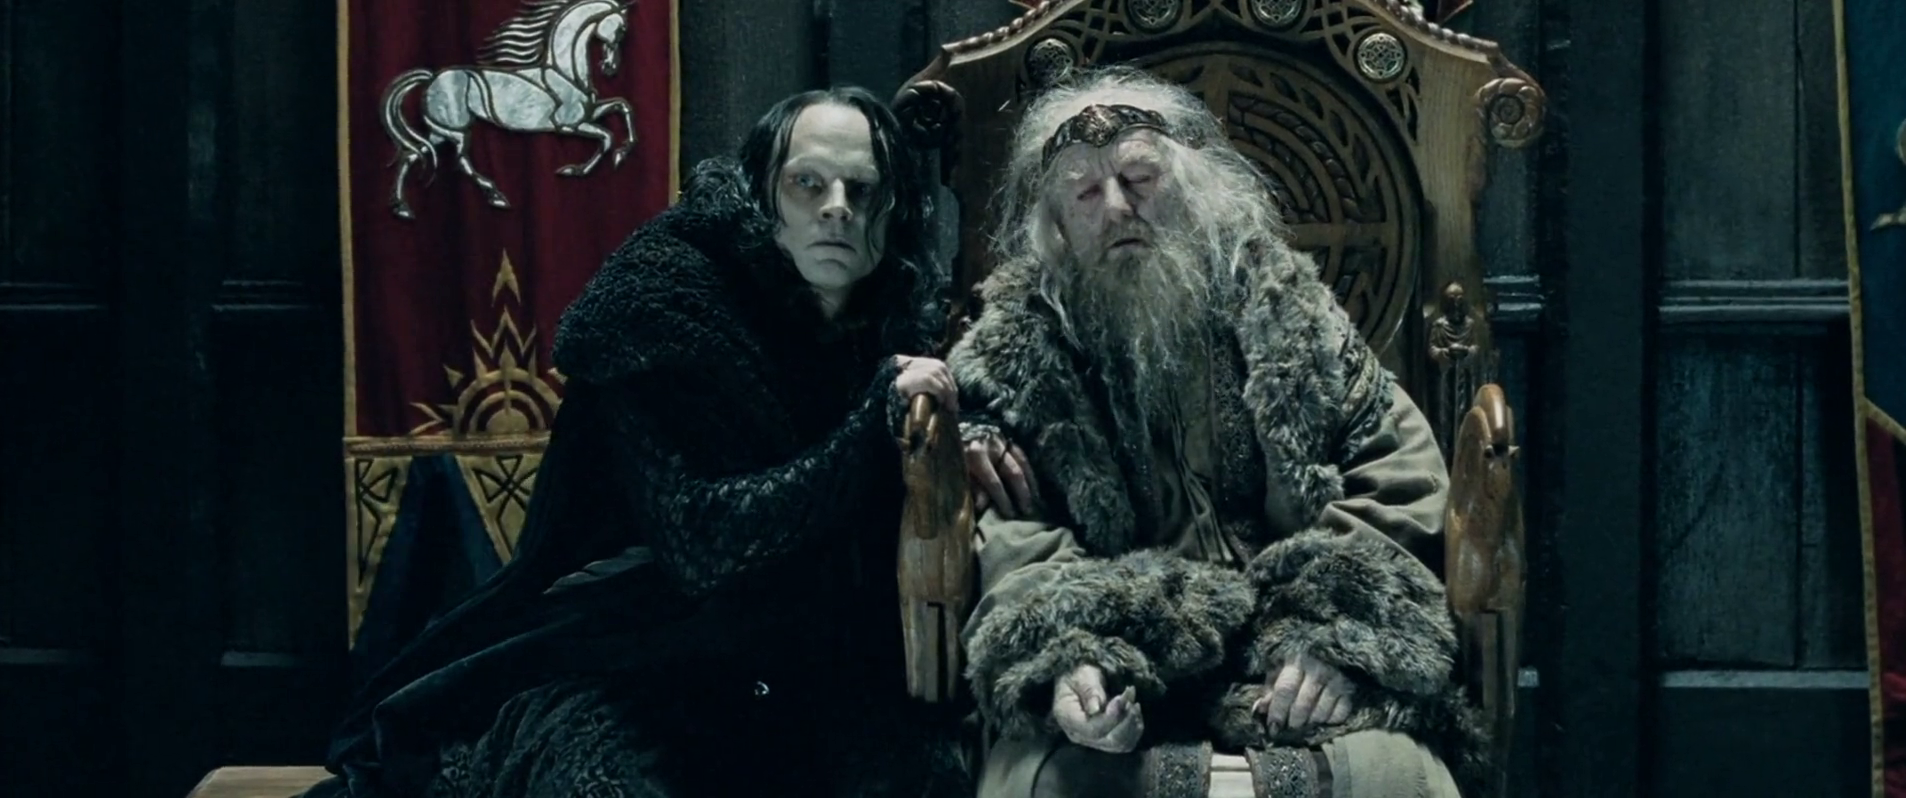 Wormtongue & King Theoden